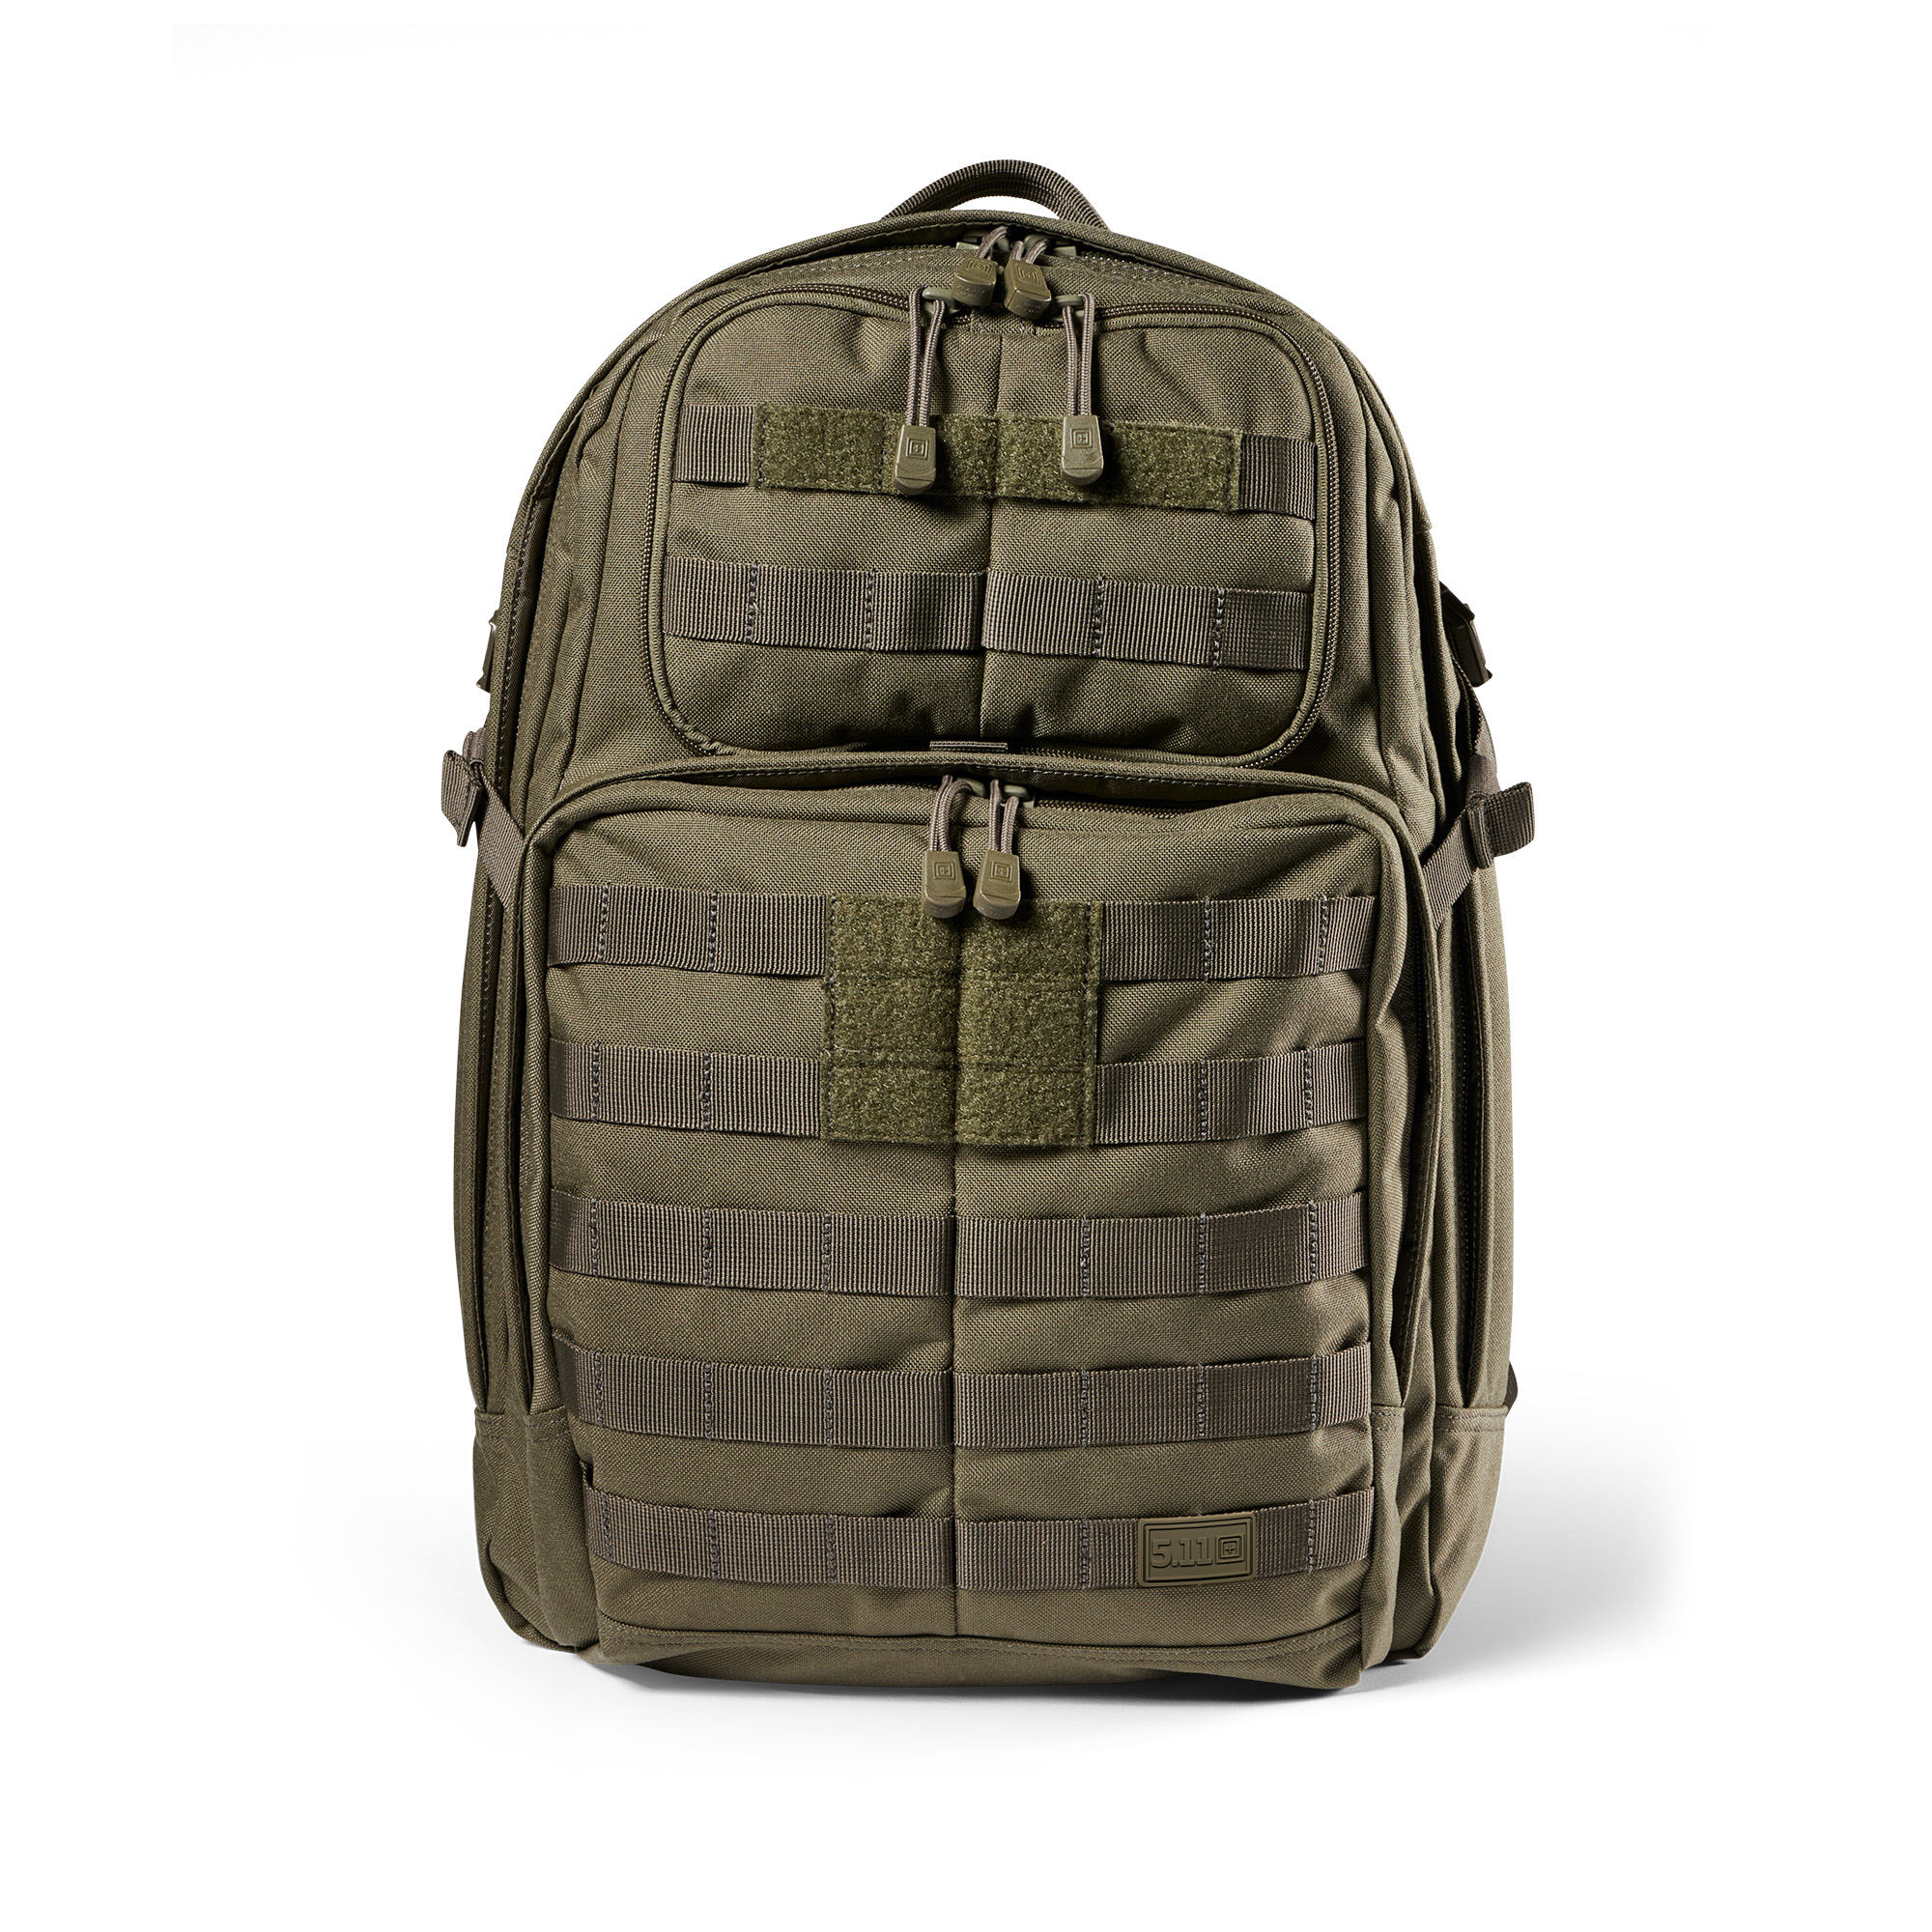 Balo 5.11 Tactical Rush 24 2.0 - Ranger Green